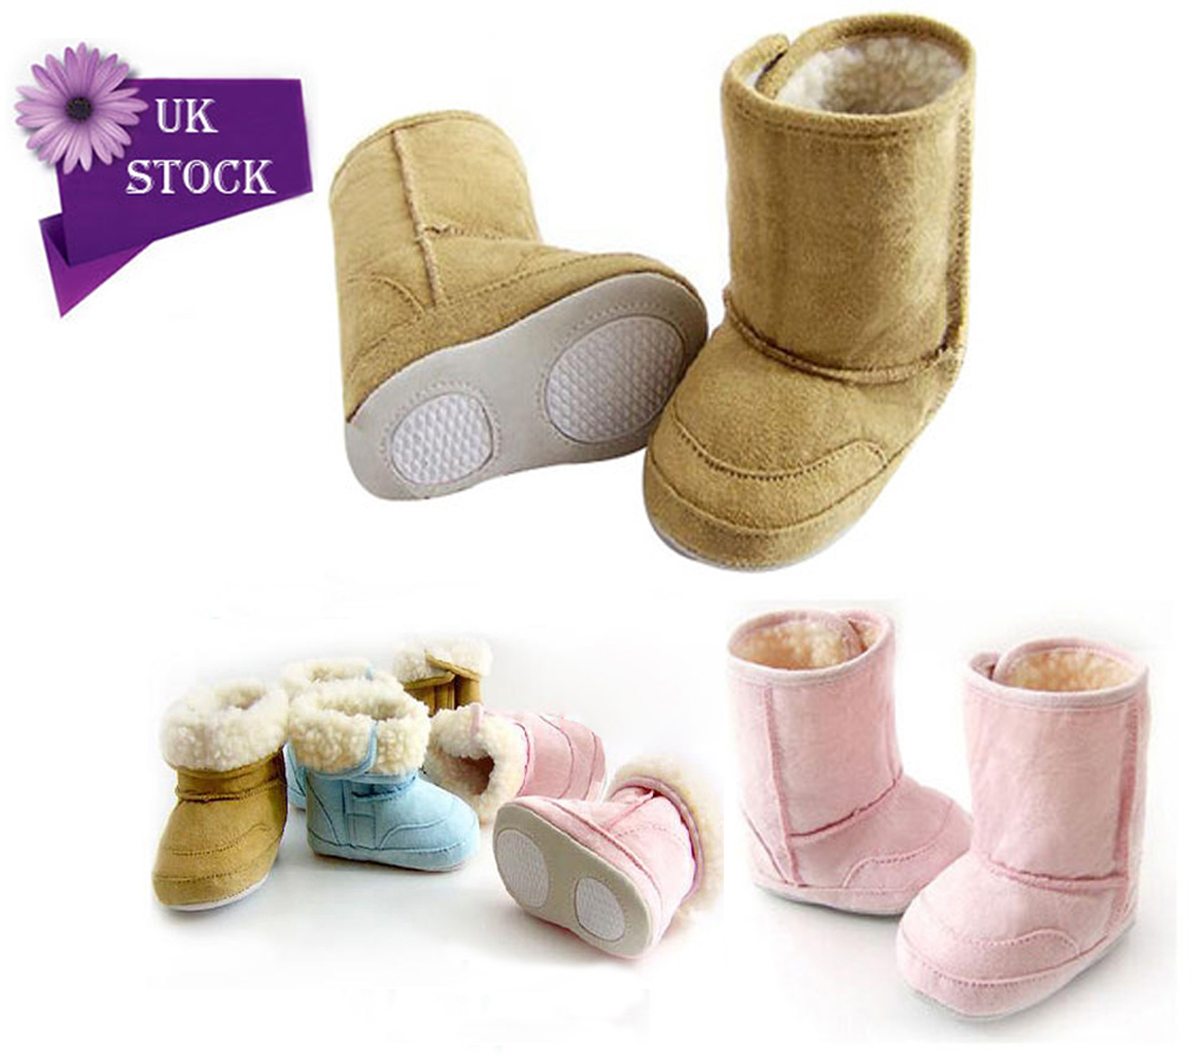 Baby Warm Winter Boots Shoes Fur Lining Boys Girls Snow 6-24Month Infant Toddler